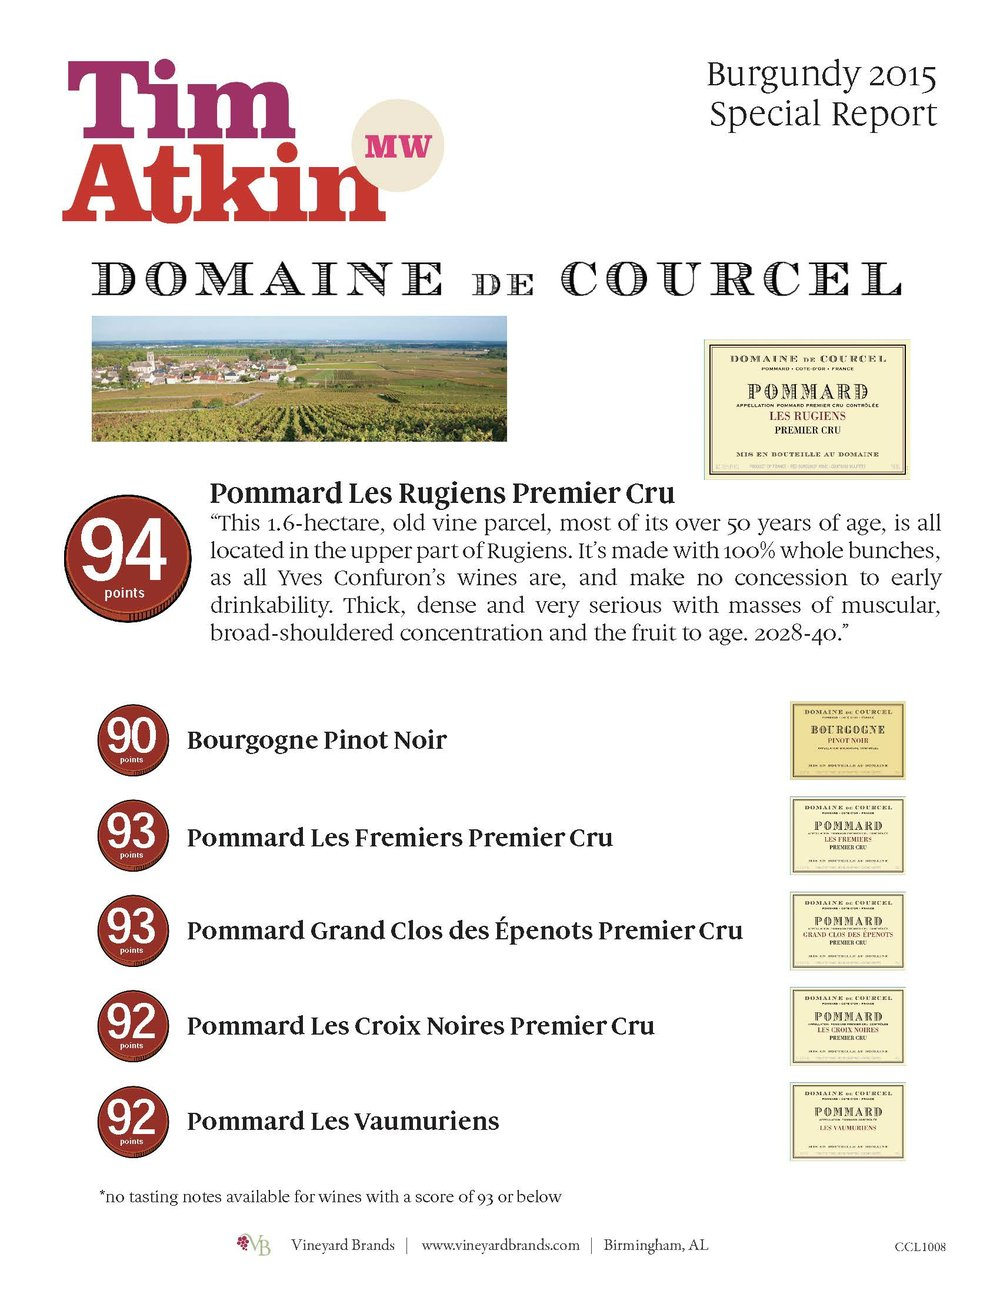 Courcel Burgundy 2015 Special Report.jpg